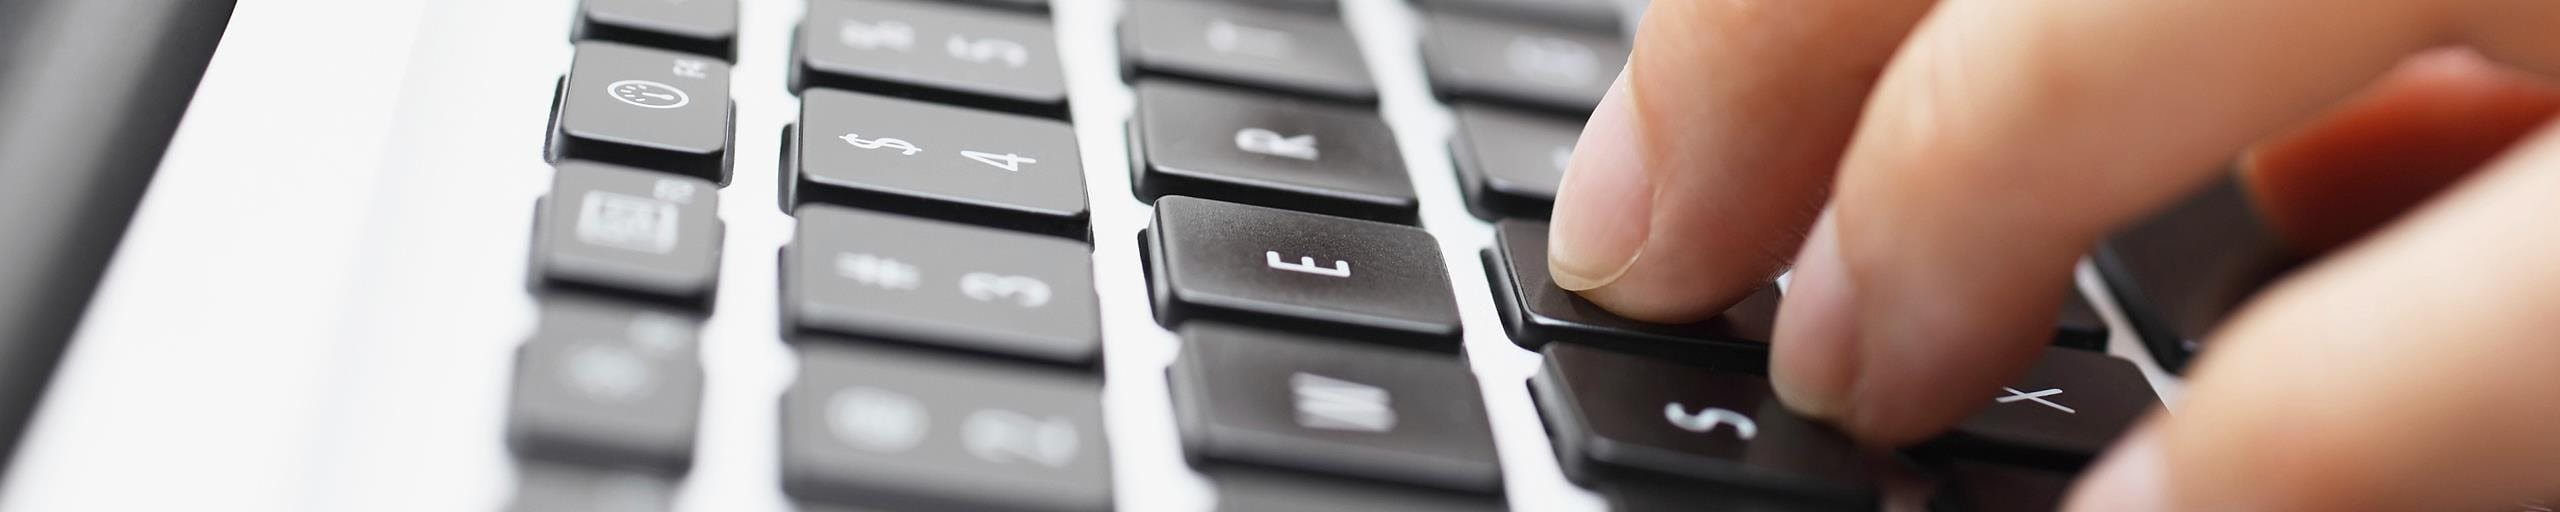 A person using a computer.